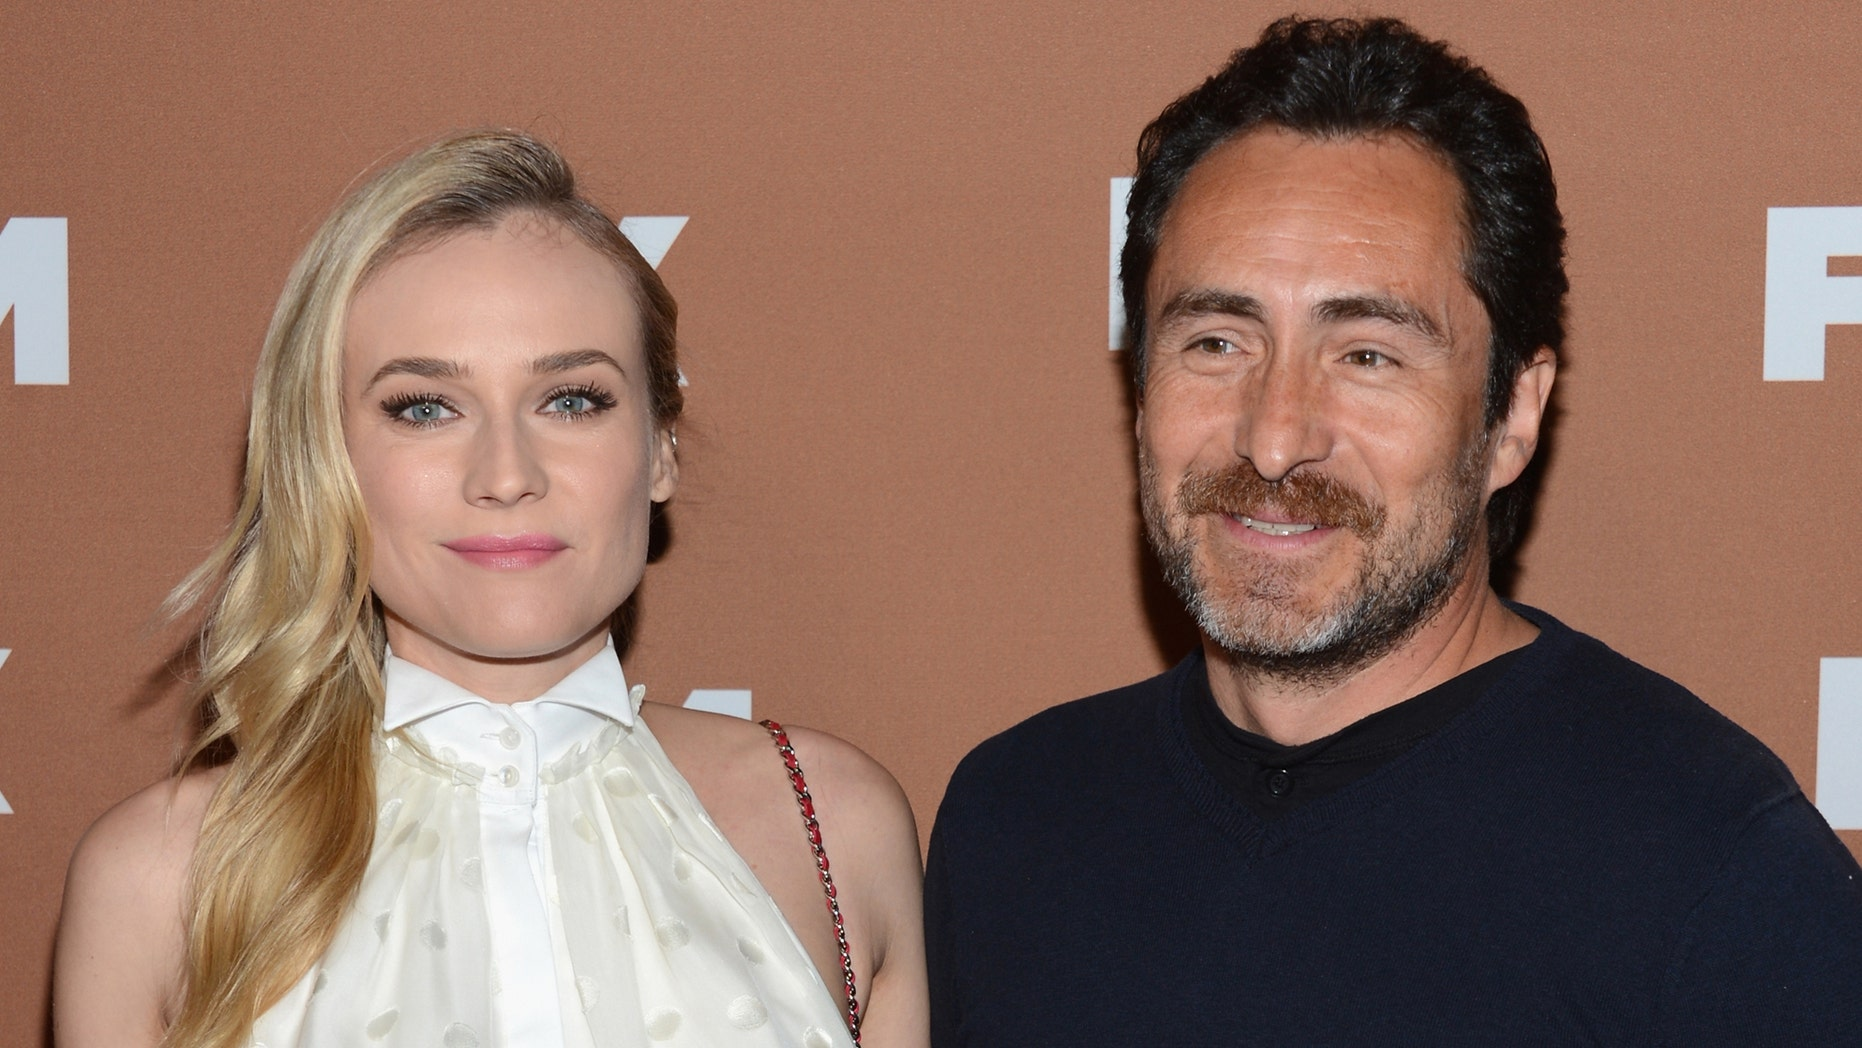 NEW YORK, NY - MARCH 28:  Diane Kruger and Demián Bichir attend the 2013 FX Upfront Bowling Event at Luxe at Lucky Strike Lanes on March 28, 2013 in New York City.  (Photo by Dimitrios Kambouris/Getty Images)